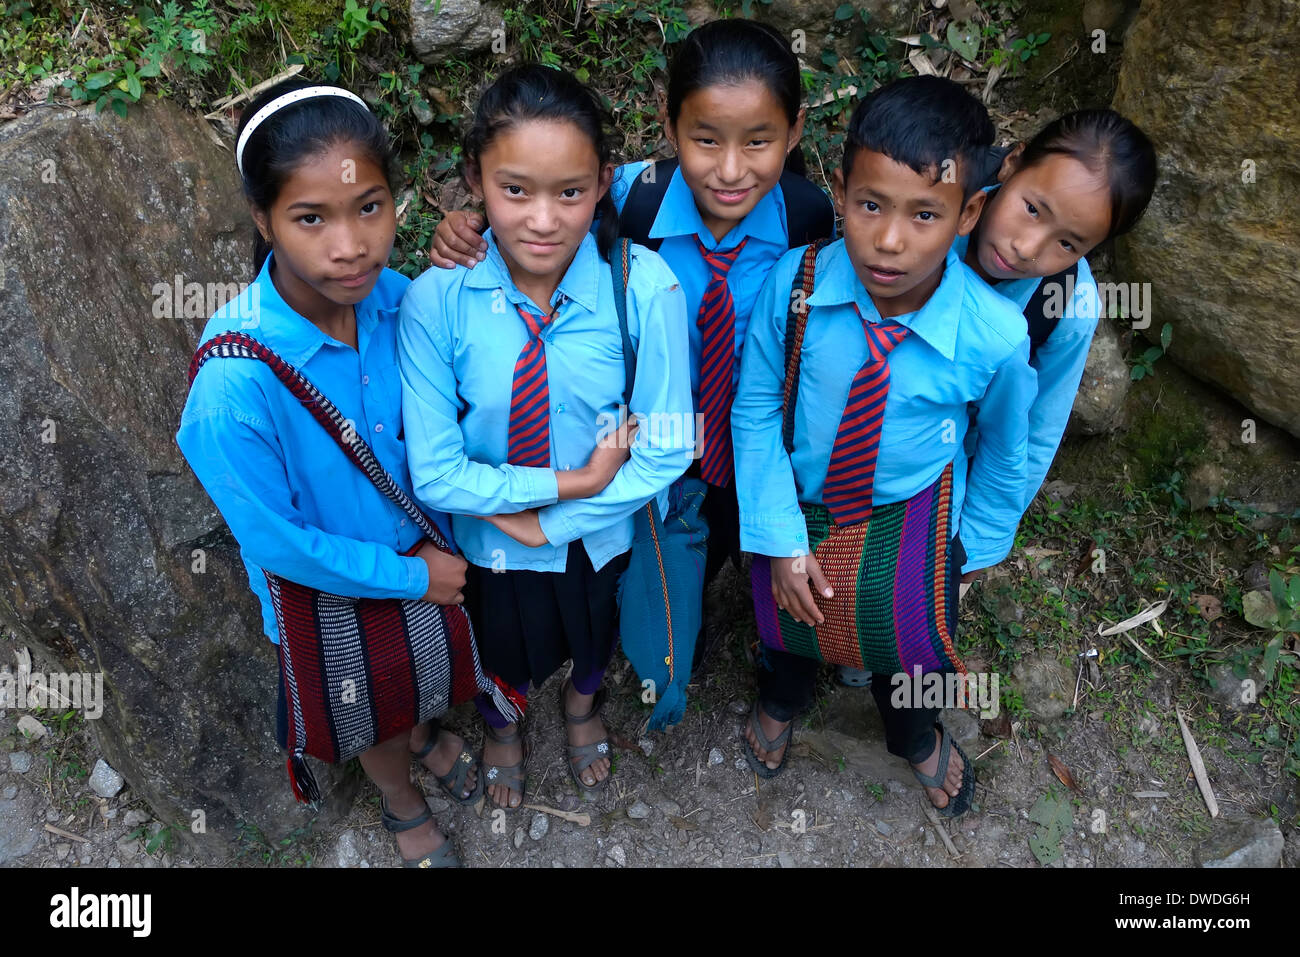 Scool children on a trail in the Gorkha region of Nepal. - Stock Image